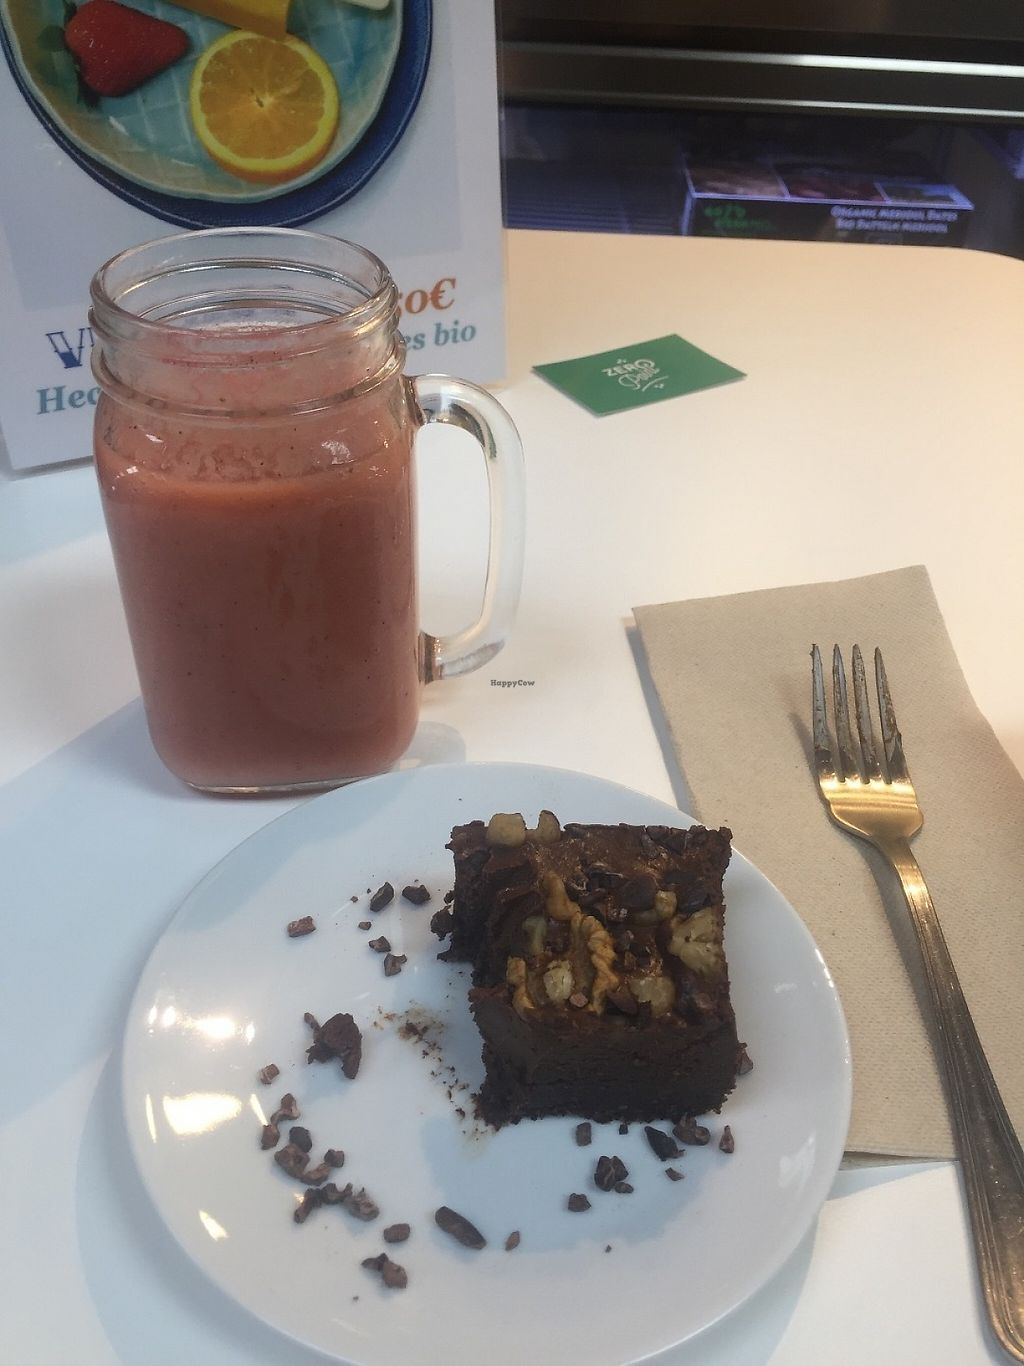 """Photo of Urban Orchard  by <a href=""""/members/profile/RosyLou"""">RosyLou</a> <br/>Kiwi, pineapple and strawberry smoothie and raw chocolate brownie! <br/> May 27, 2017  - <a href='/contact/abuse/image/80967/263153'>Report</a>"""